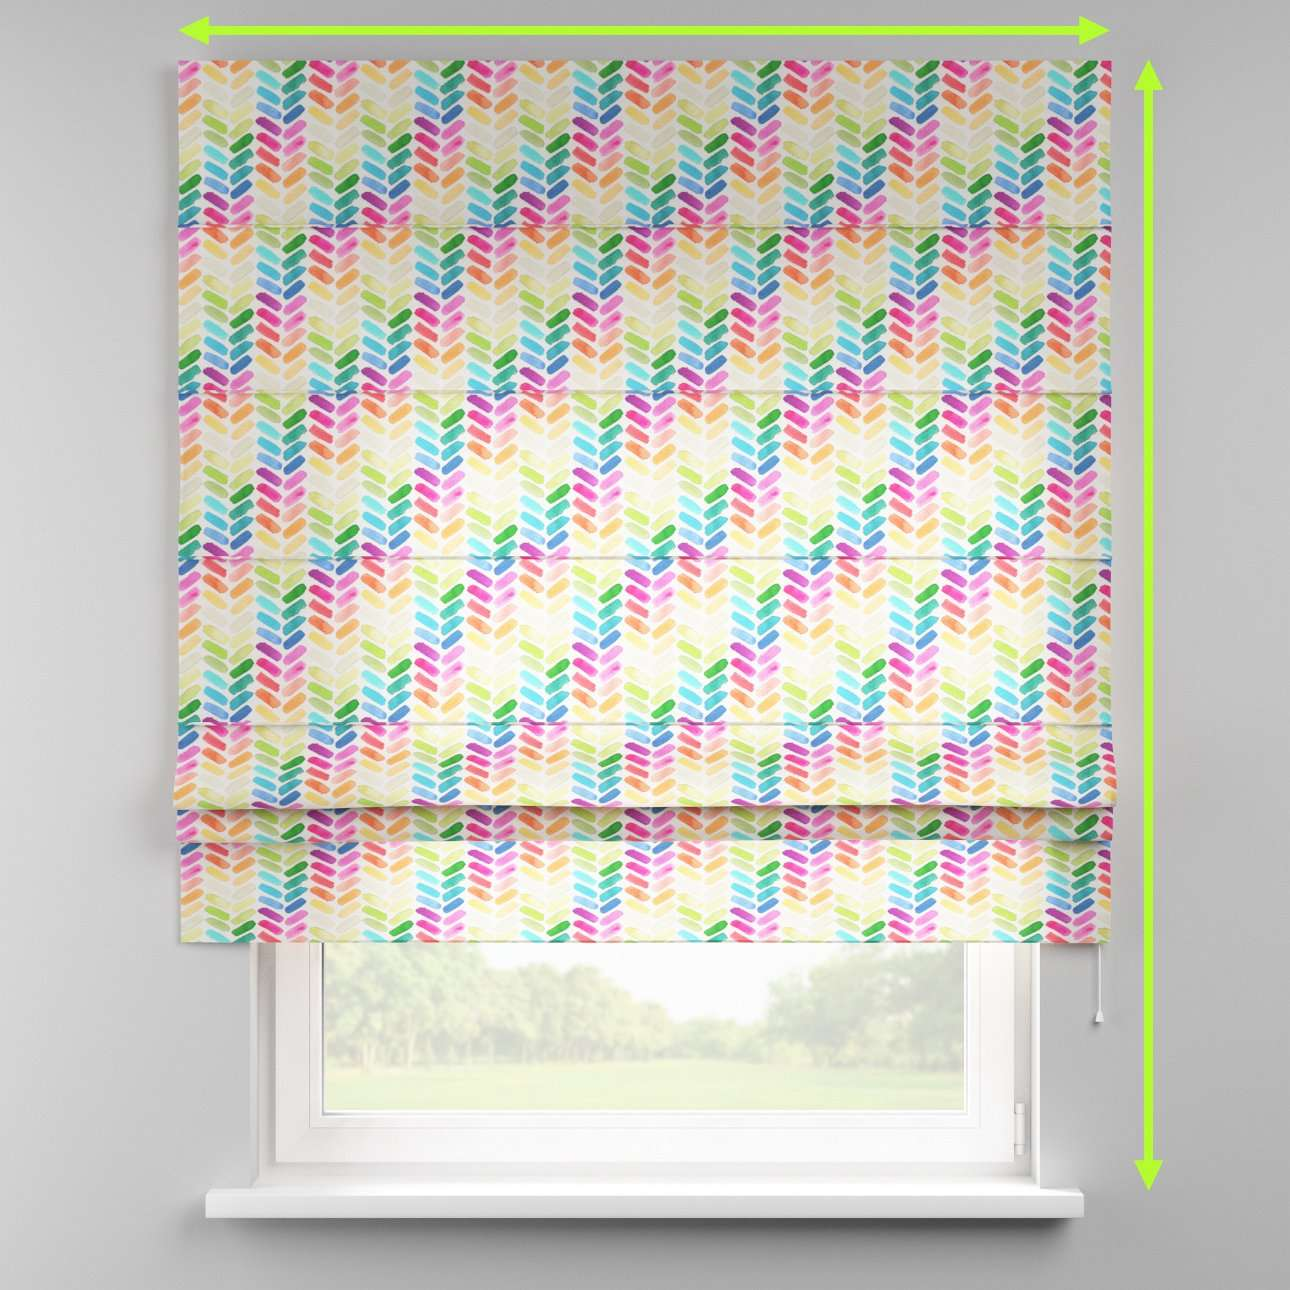 Padva roman blind  in collection New Art, fabric: 140-25